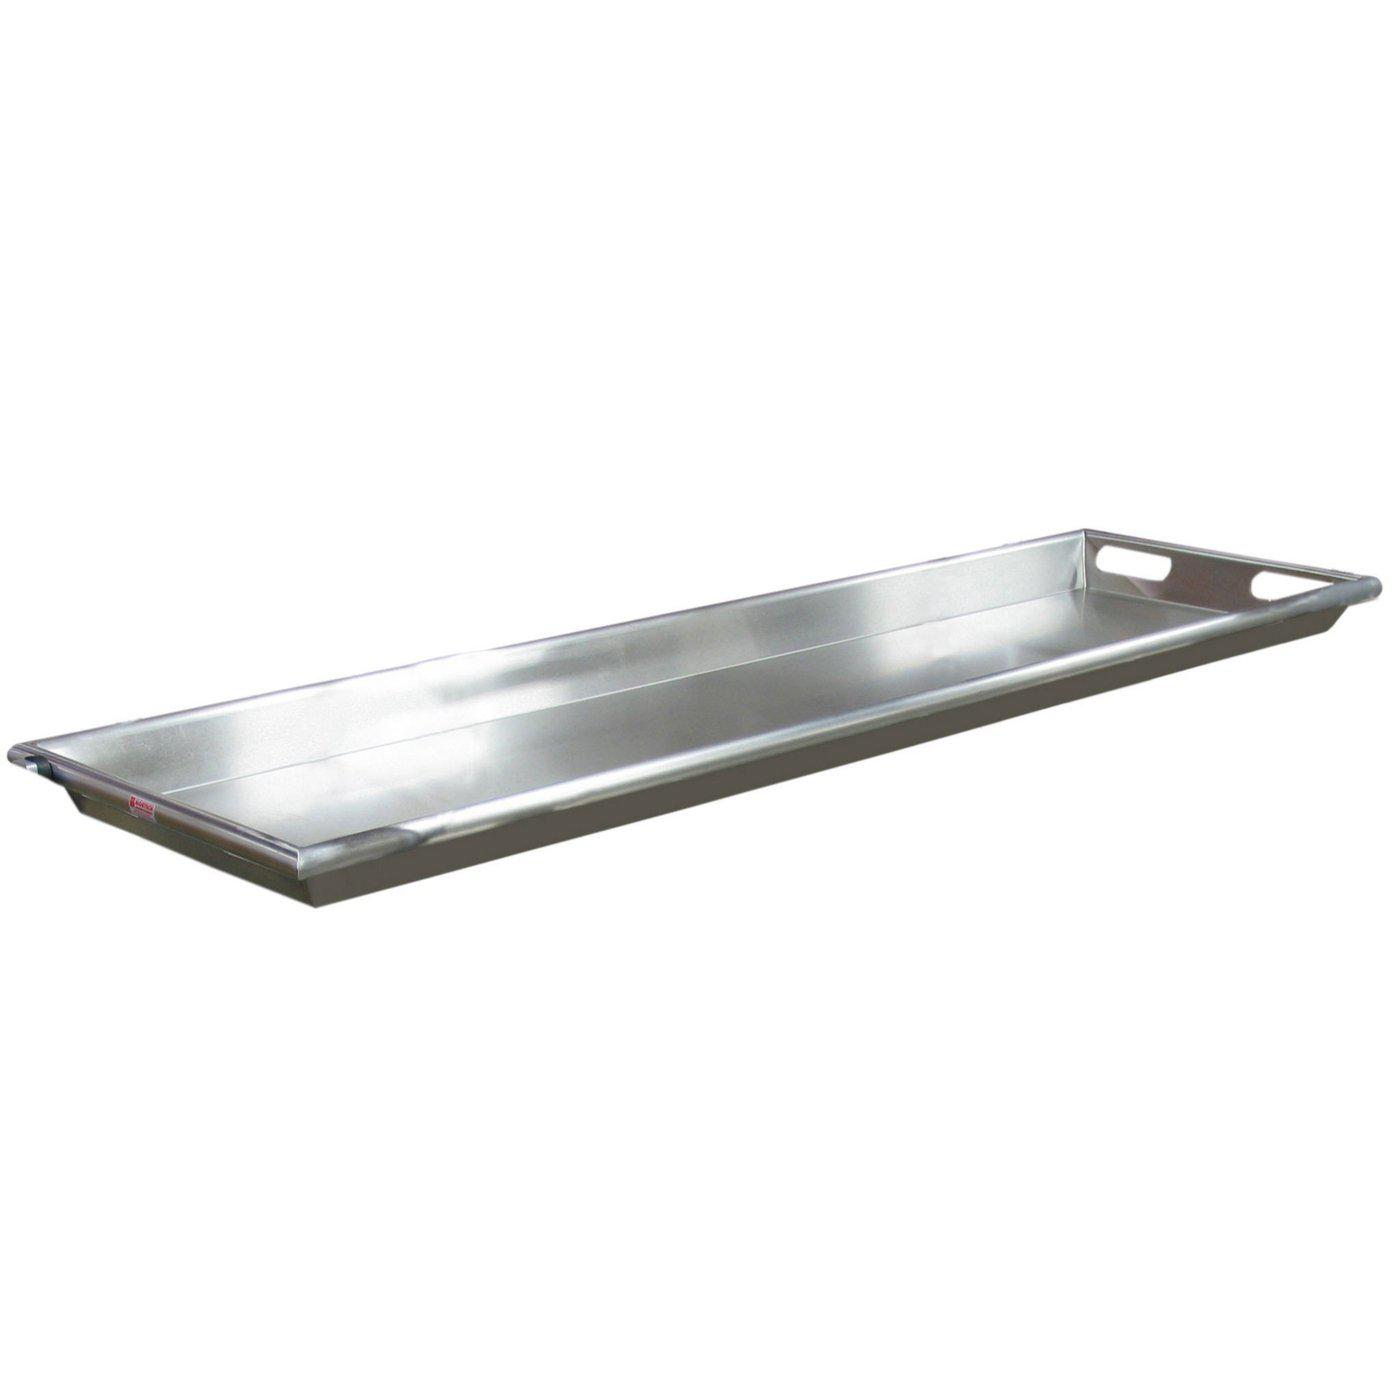 Standard Body Tray-Cadaver Trays-Mortech Manufacturing Company Inc. Quality Stainless Steel Autopsy, Morgue, Funeral Home, Necropsy, Veterinary / Anatomy, Dissection Equipment and Accessories